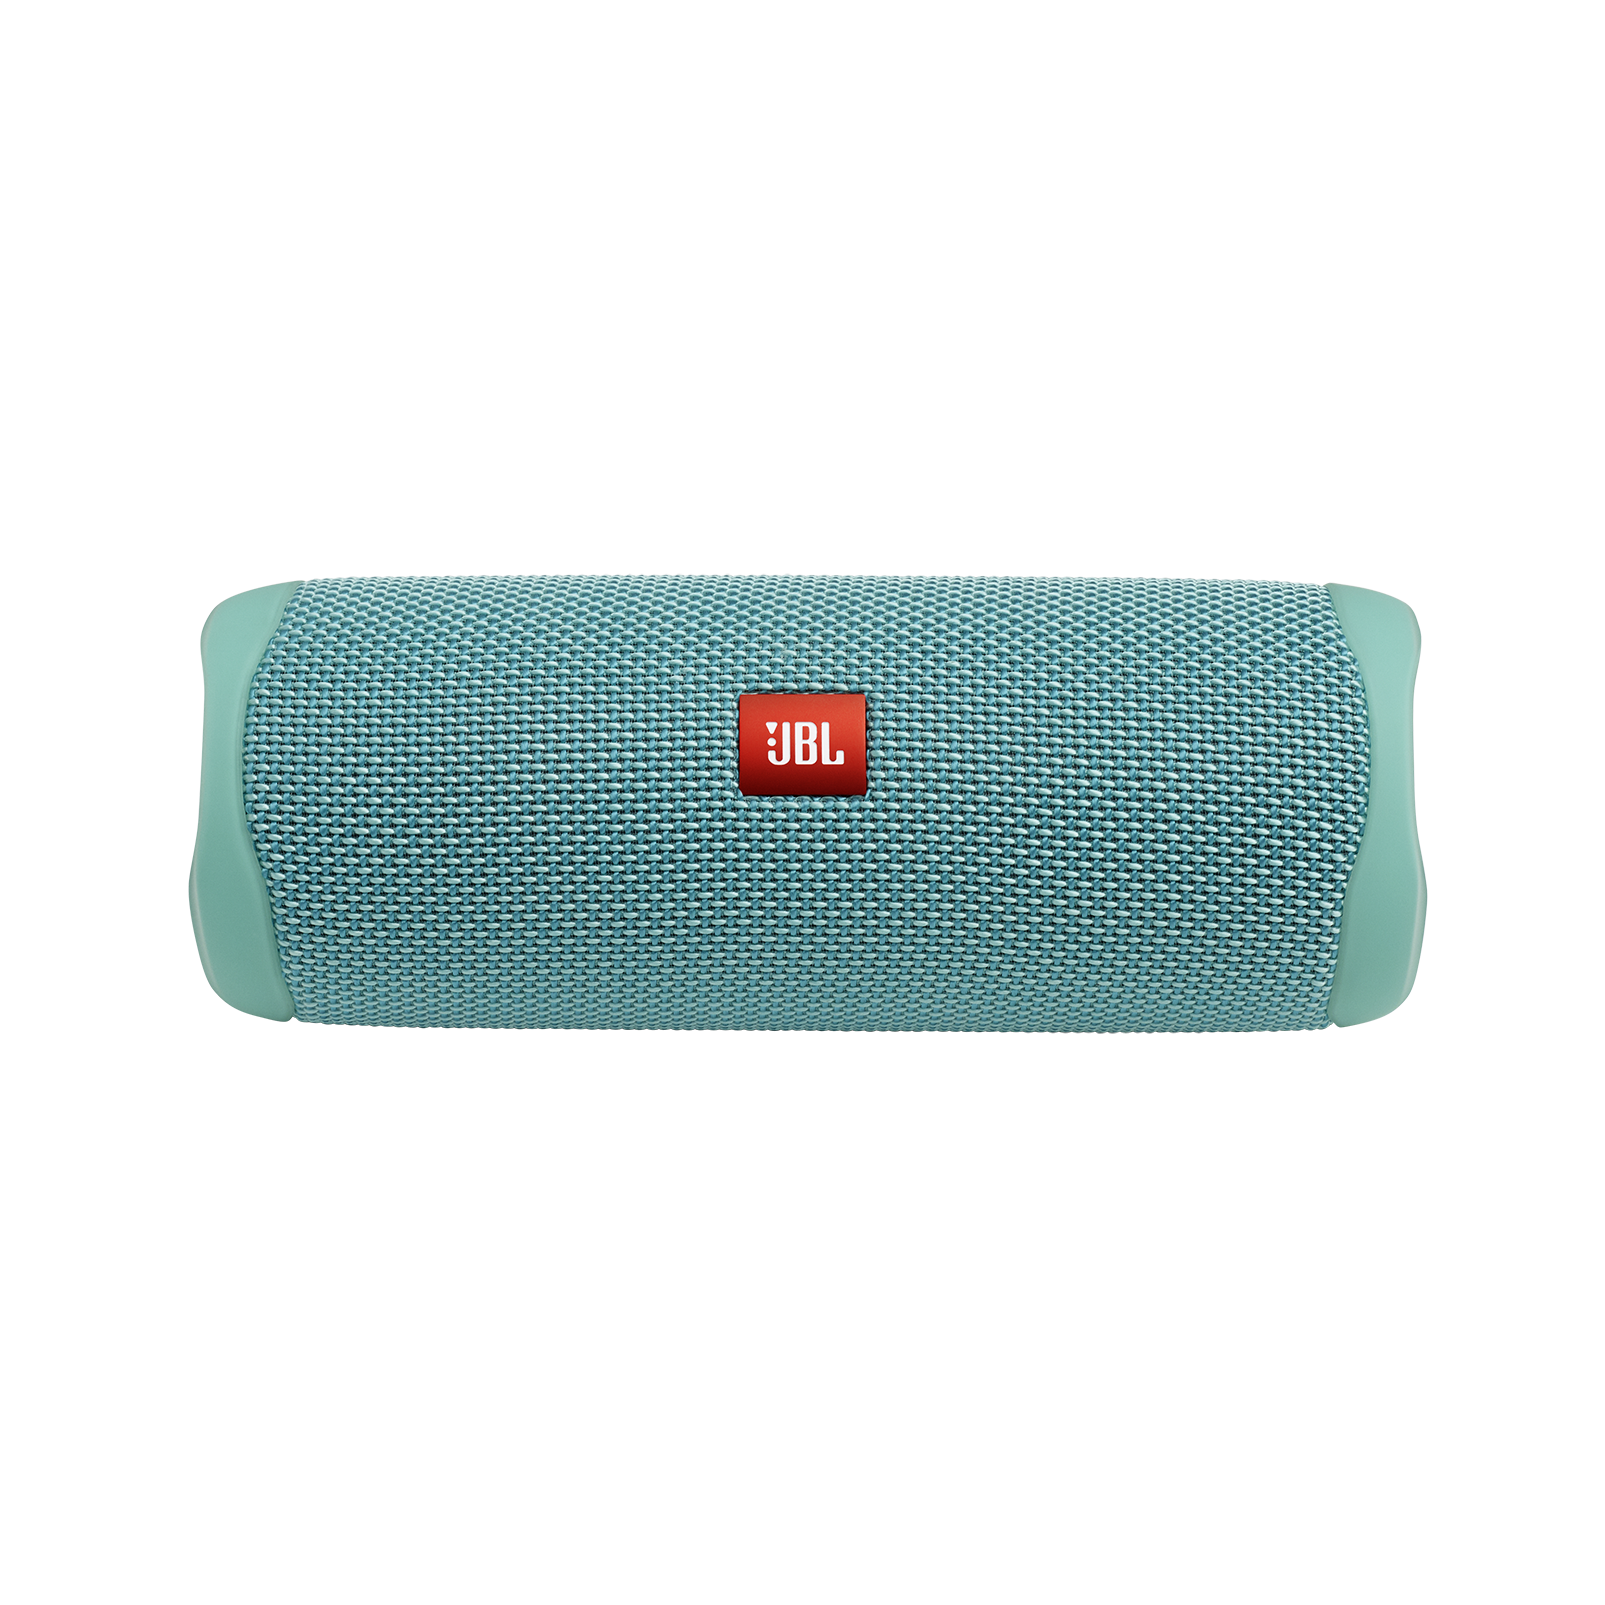 JBL FLIP 5 - Teal - Portable Waterproof Speaker - Front